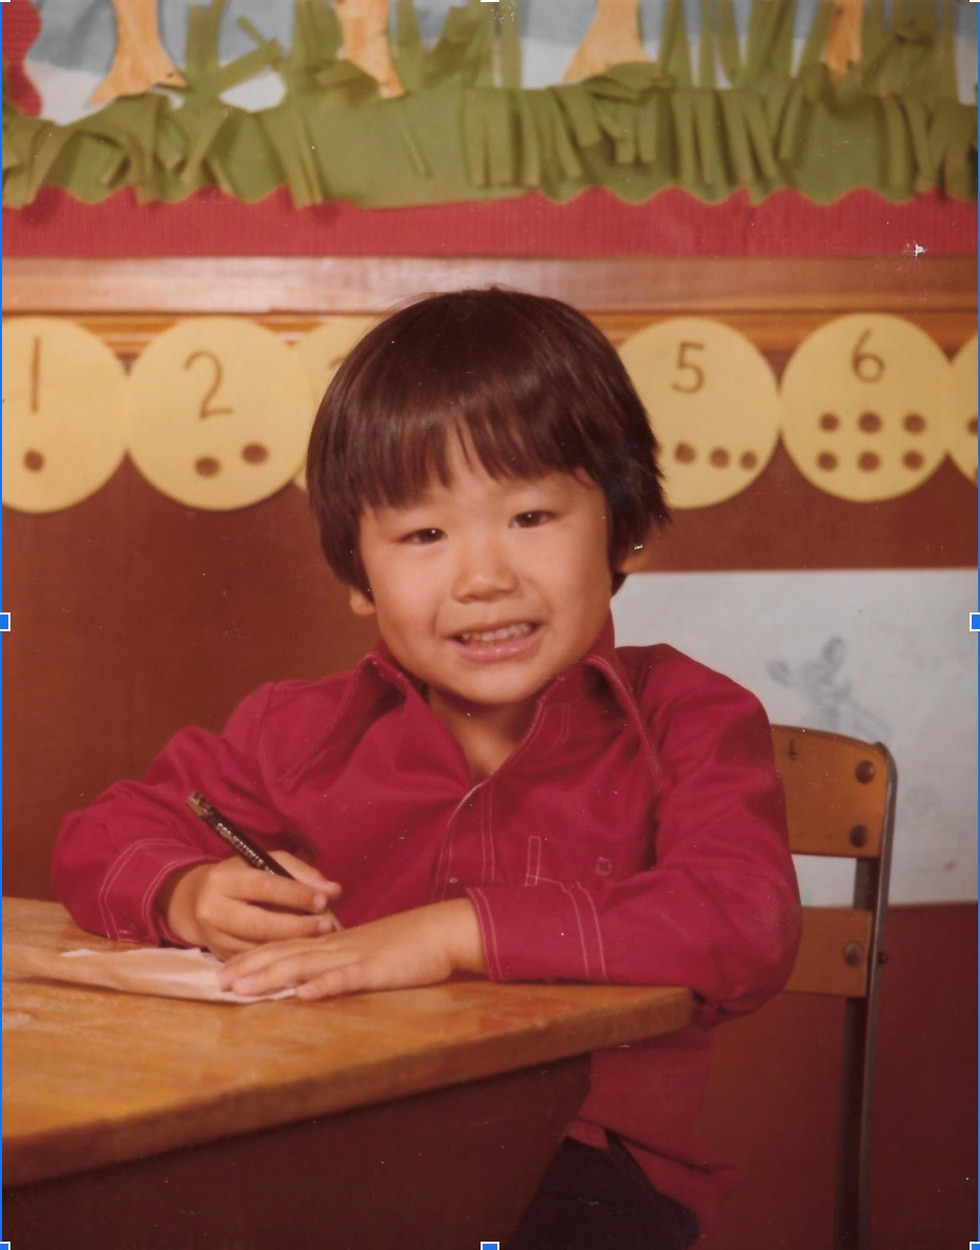 Hong found school difficult at first because he didn't speak English and couldn't communicate...